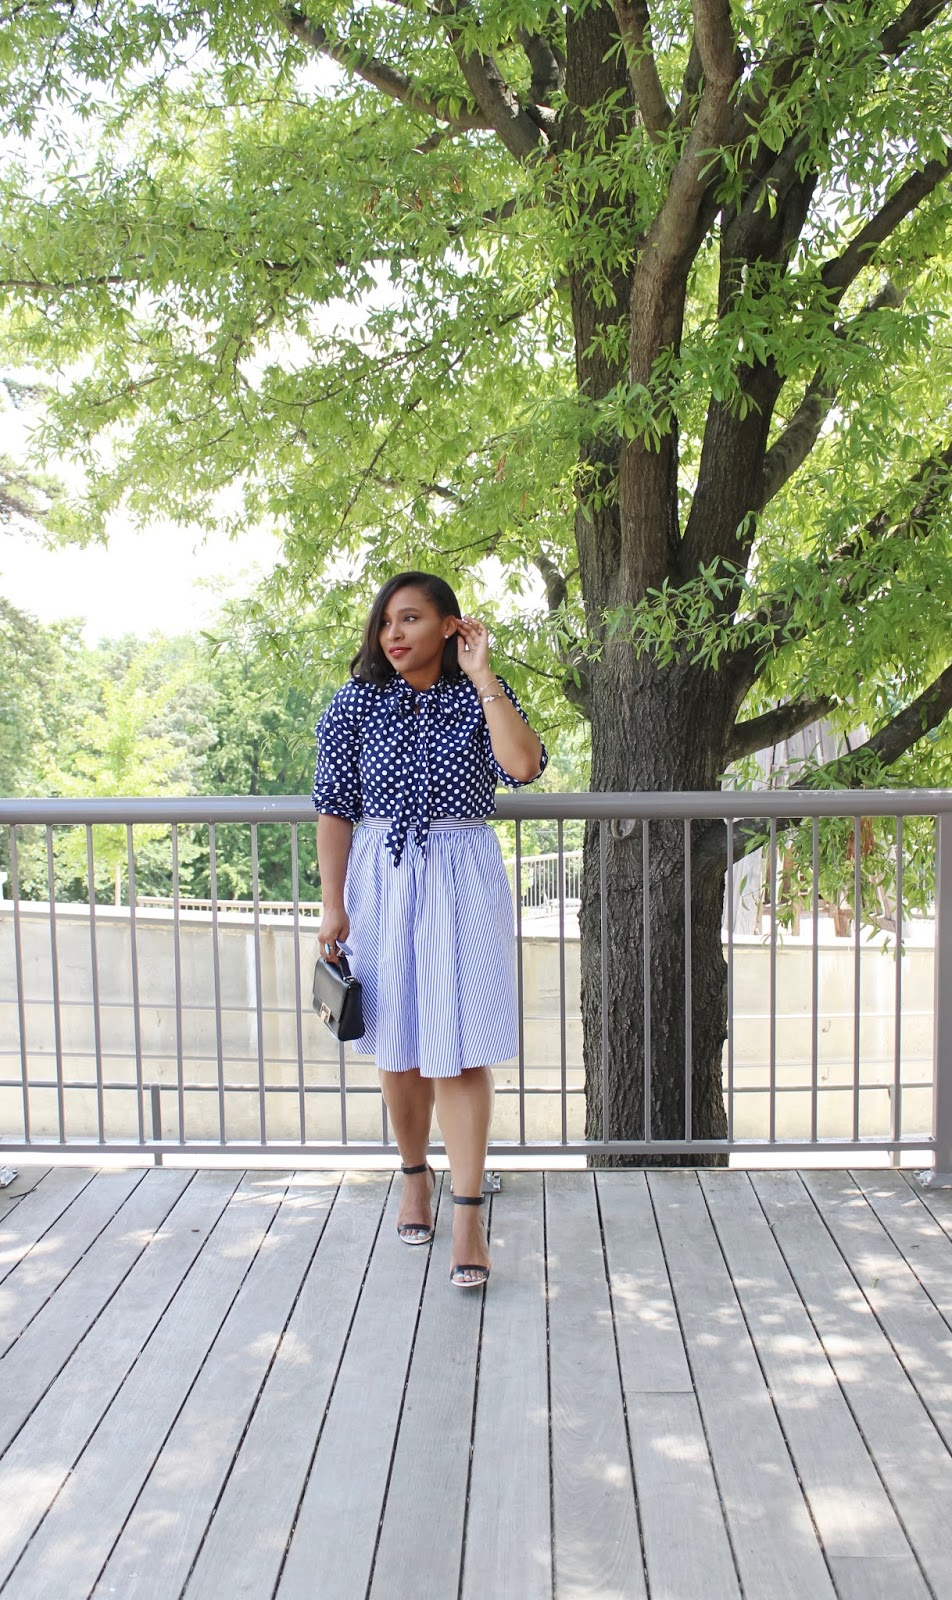 Shoes of prey, deisgn your own shoes, summer looks, dc blogger, twirl, blue outfits, midi skirt, striped shirt, ankle strao heels, polka dot shirt, walking in the street